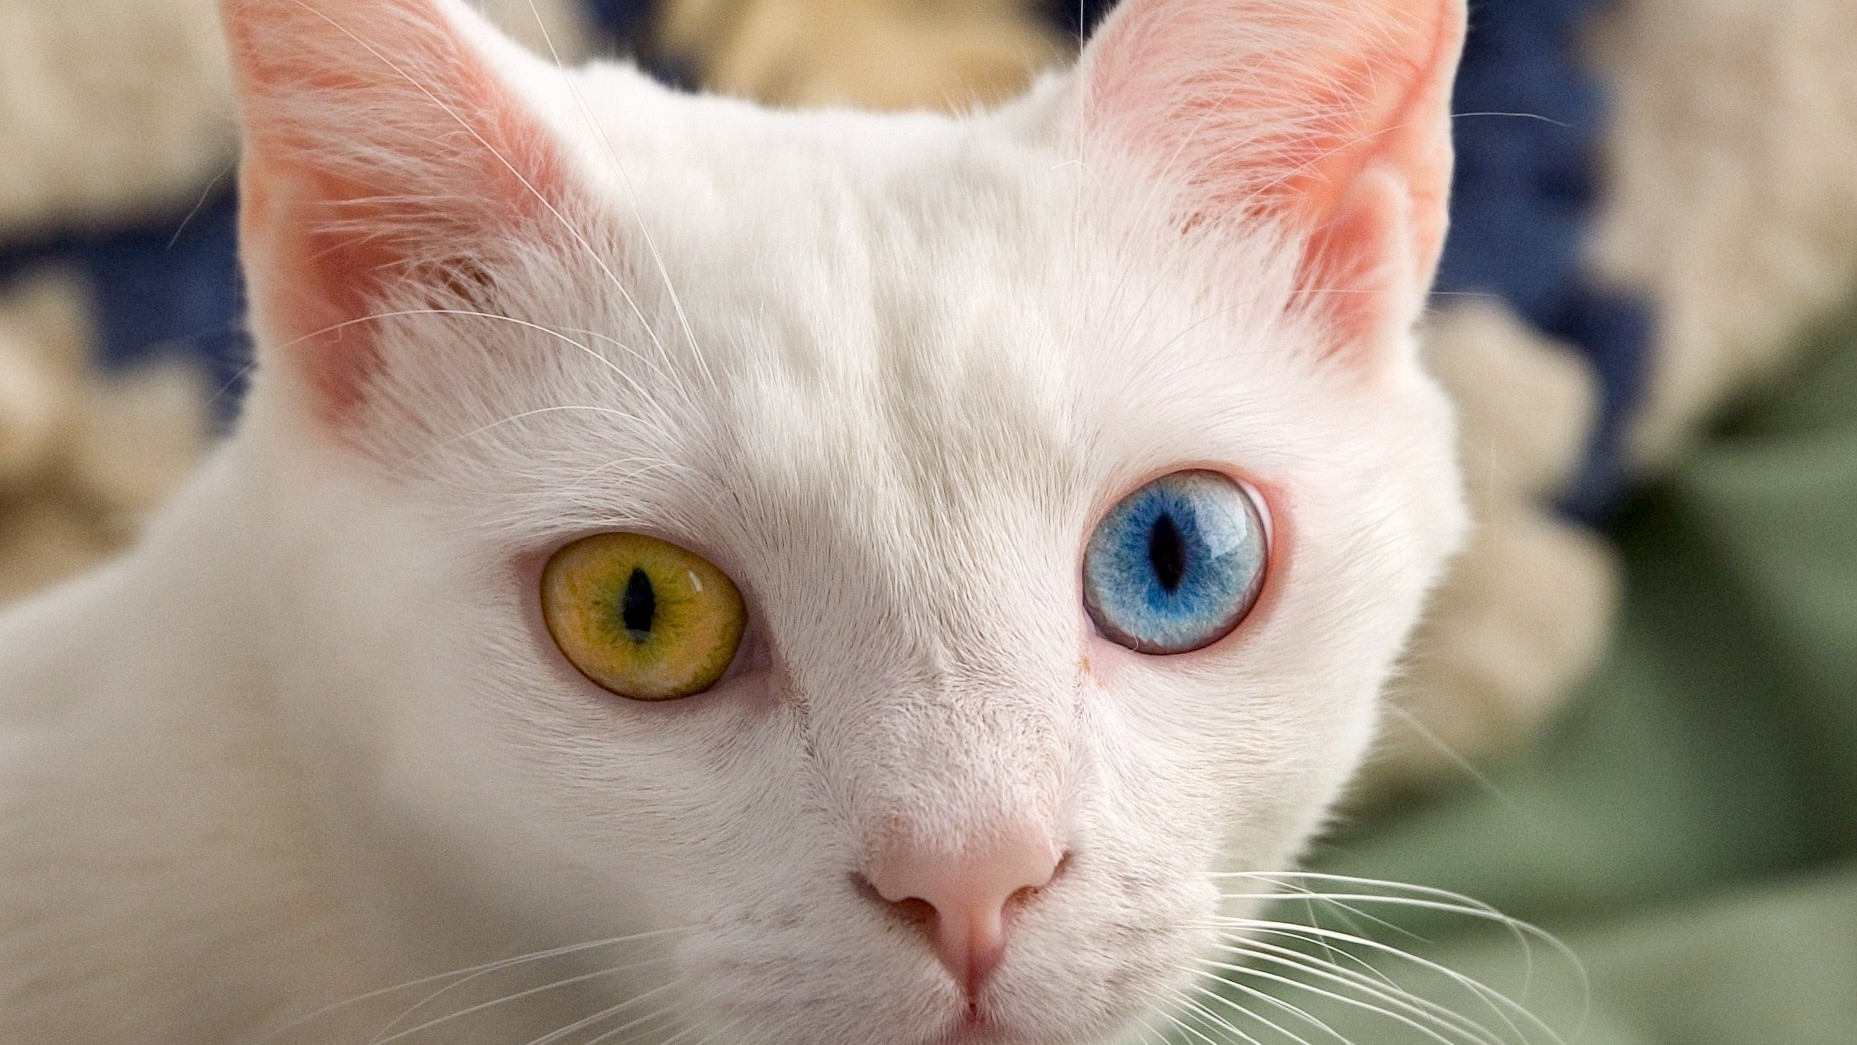 Are Cats Spies Sent by Aliens? A Deep Examination of One of the Internet's Best Conspiracy Theories